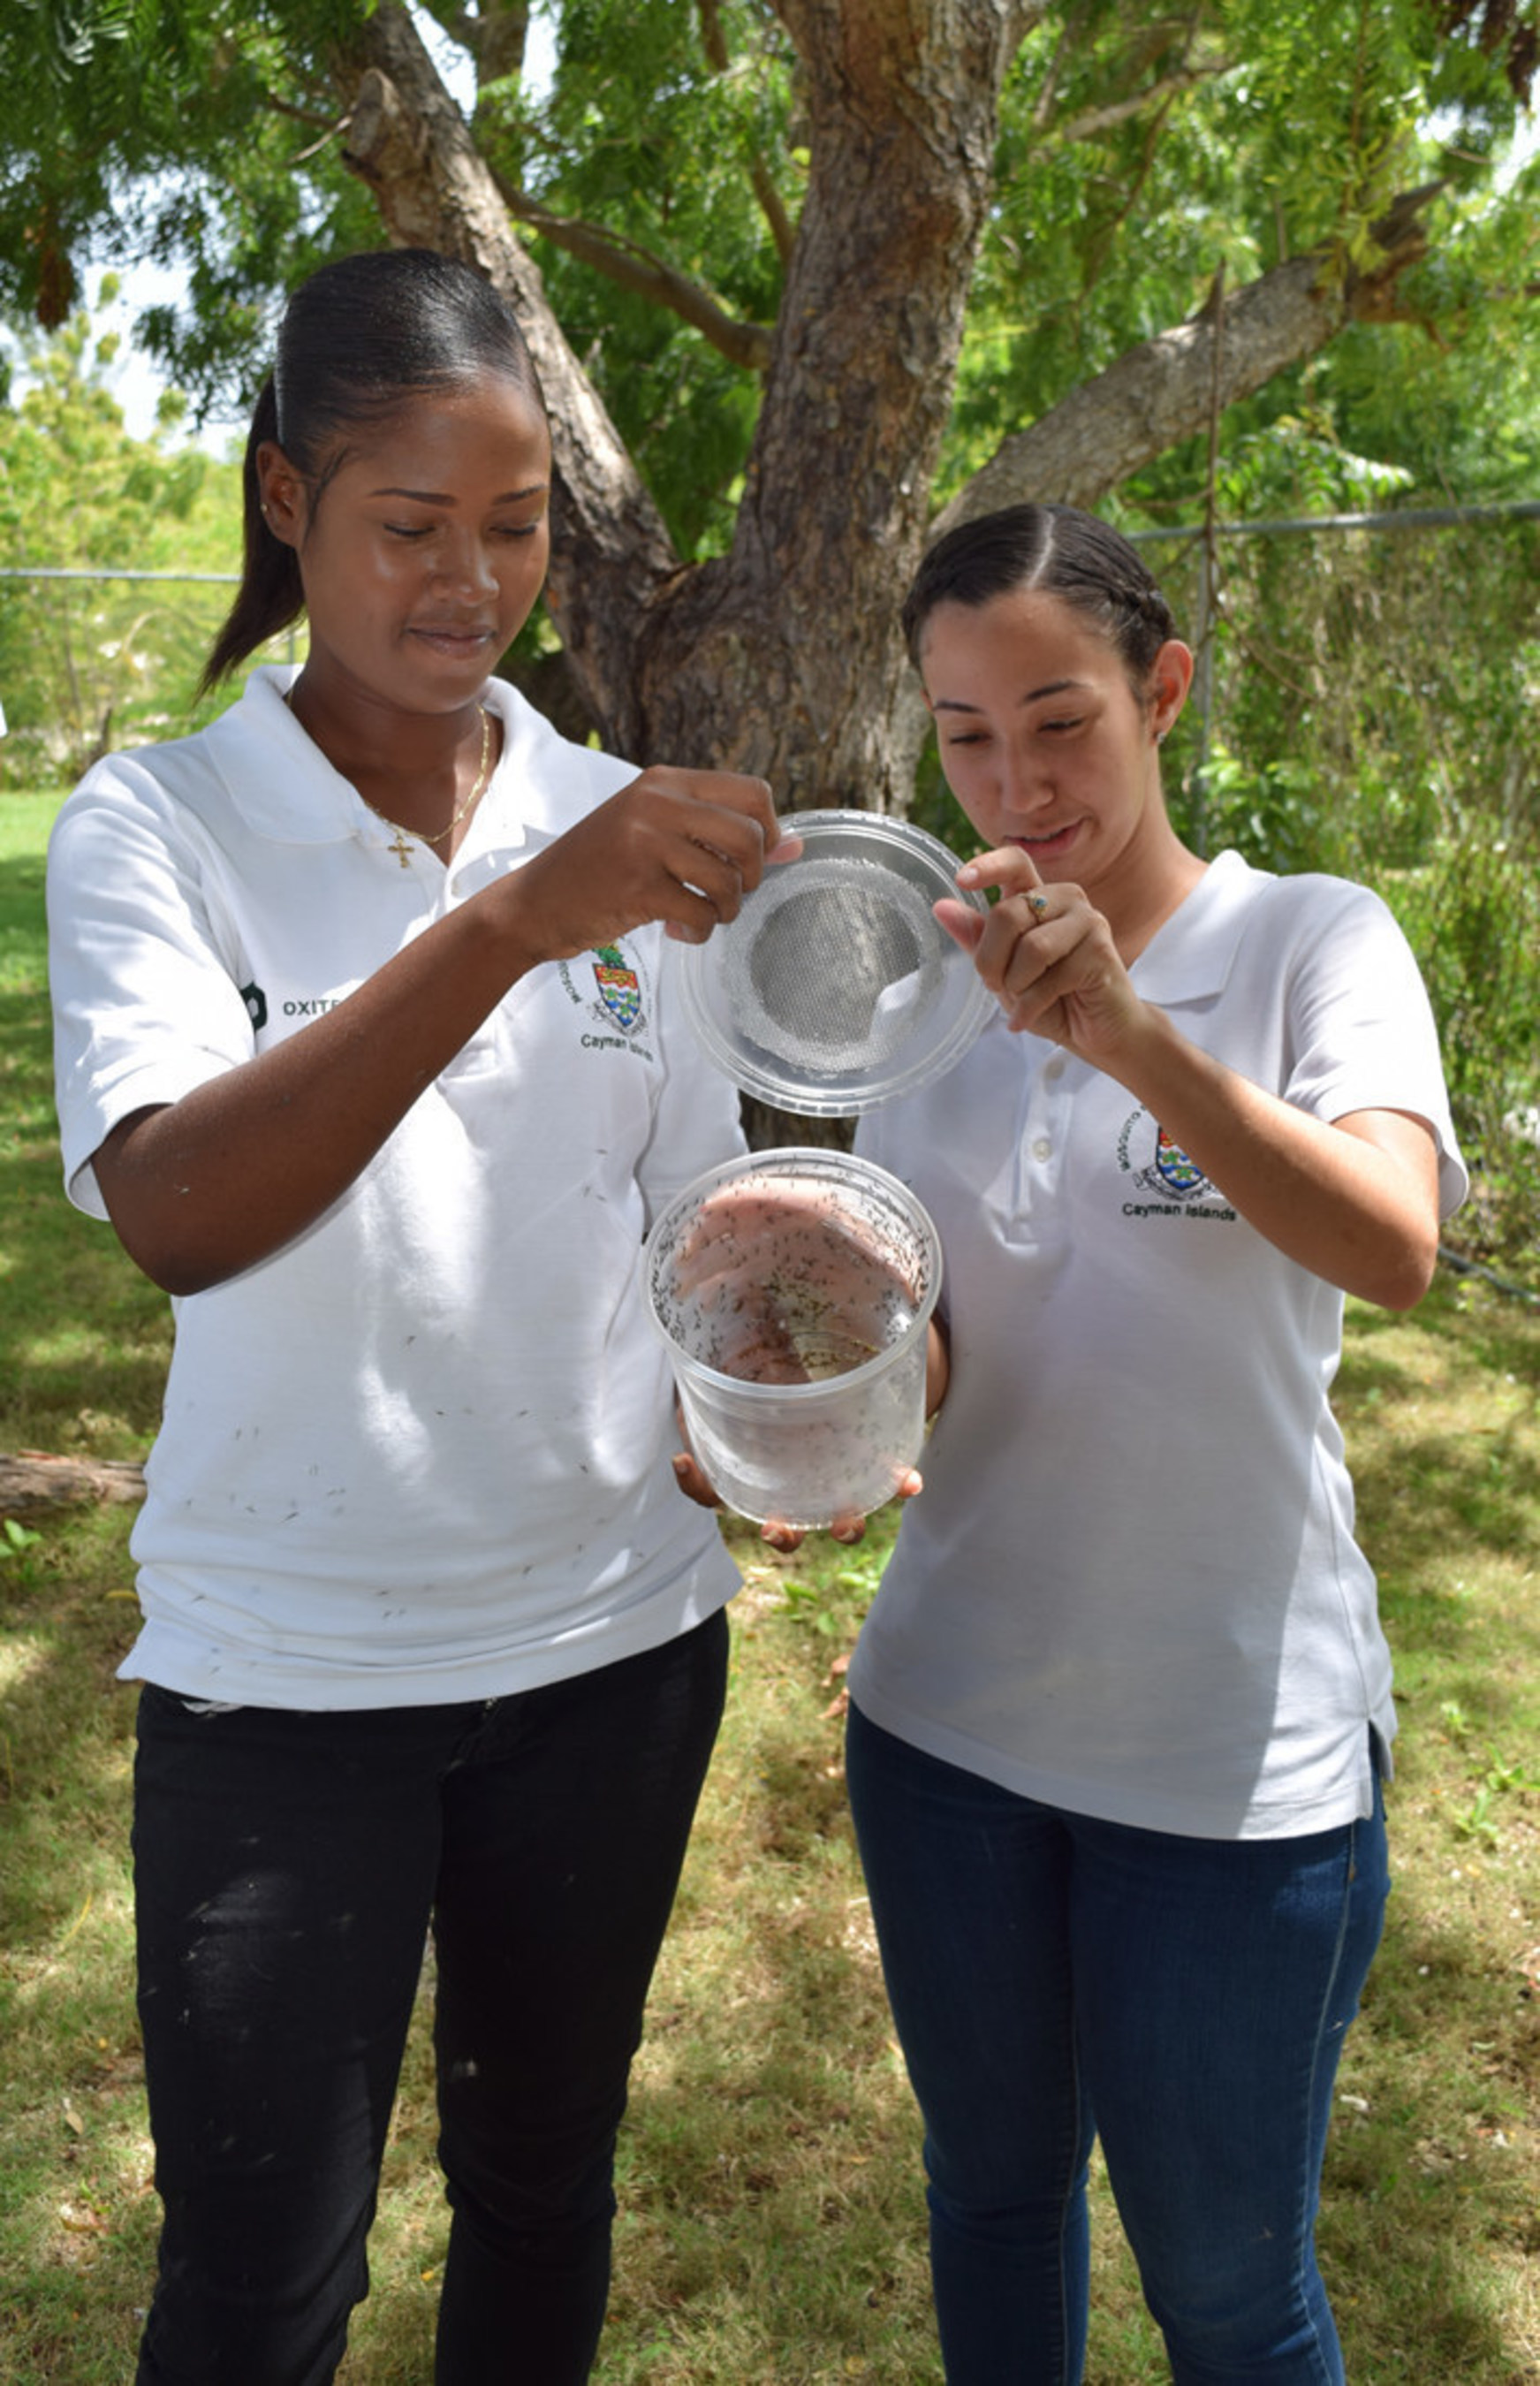 """Giselle Johnson and Heidi Groves, who work on the mosquito programme, open pots of genetically modified """"Friendly Aedes aegypti mosquitoes"""". (PRNewsFoto/Oxitec Ltd)"""